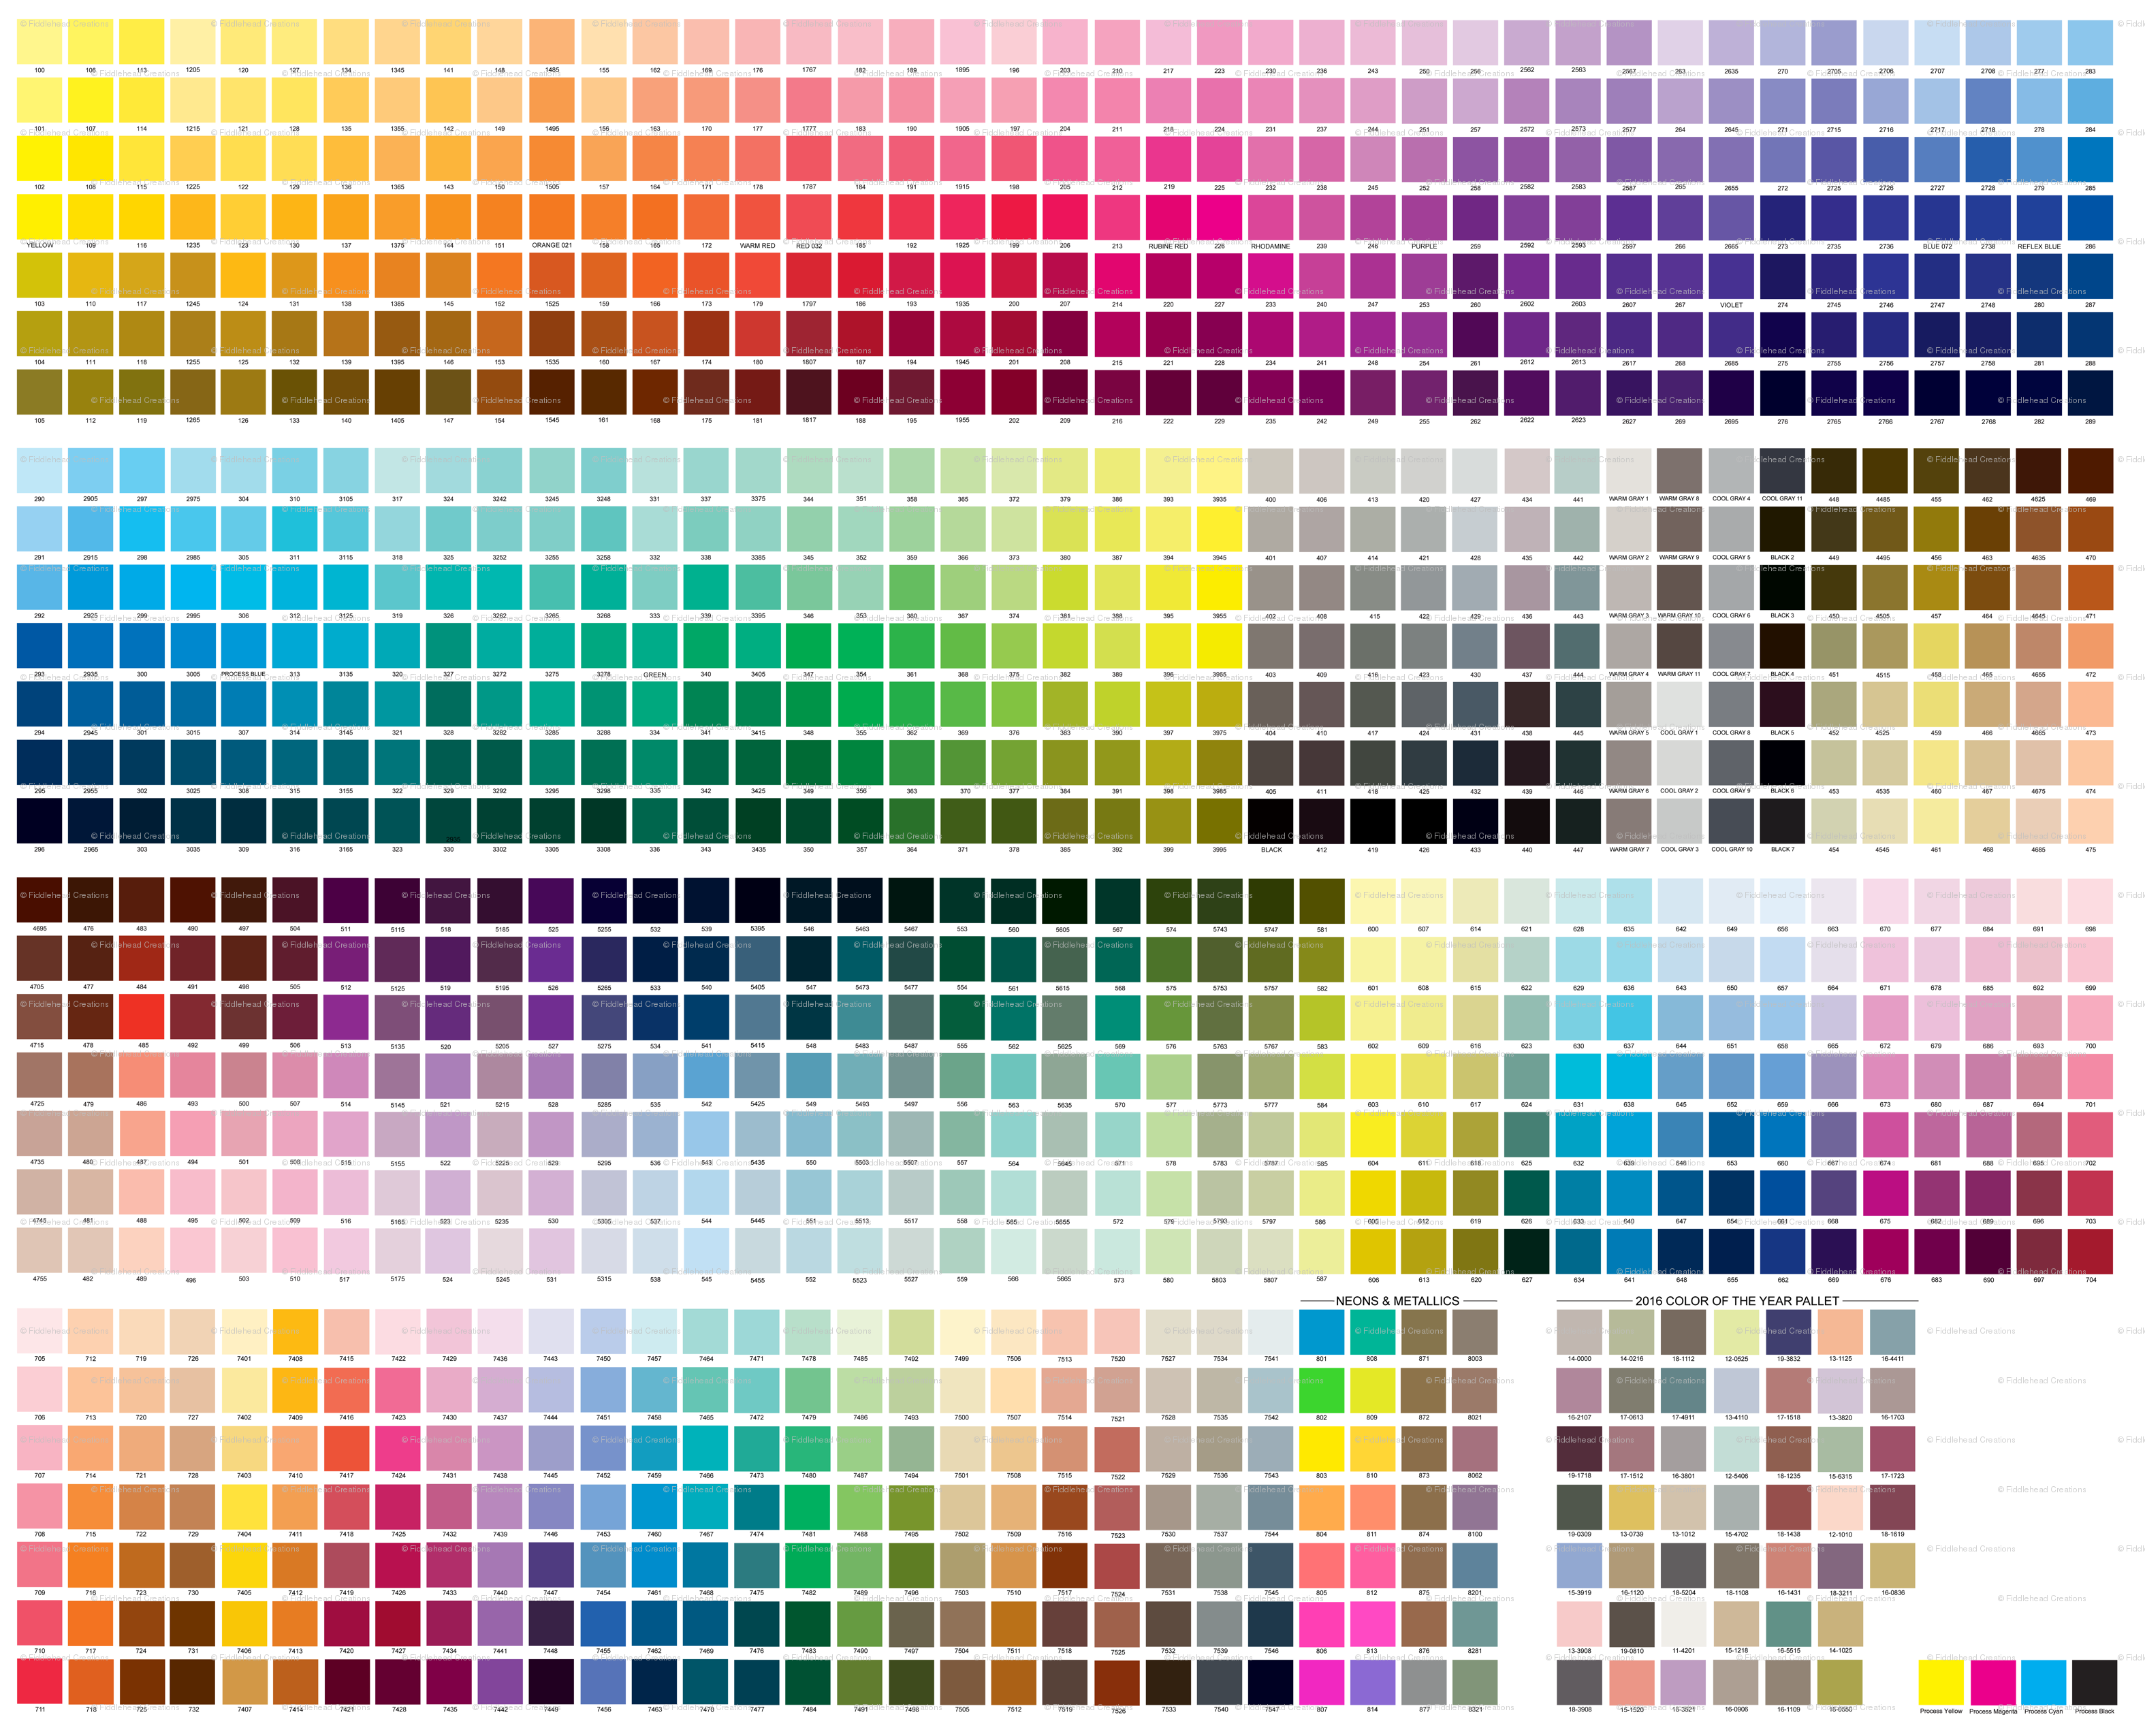 Pantone coated color guide fabric fiddleheadcreations spoonflower nvjuhfo Images